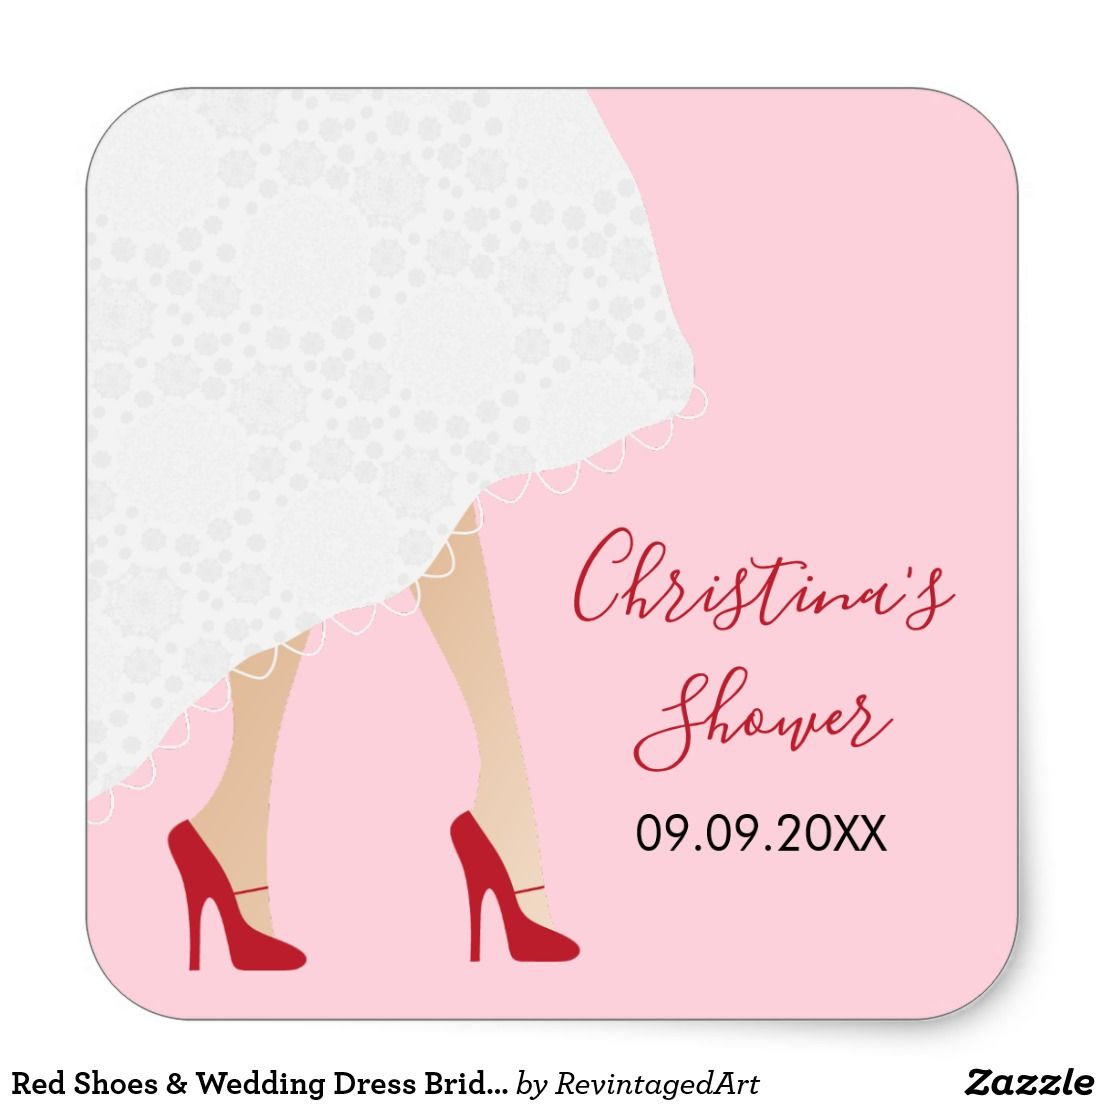 Red dress shoes for wedding  Red Shoes u Wedding Dress Bridal Shower Stickers  For the Bride to